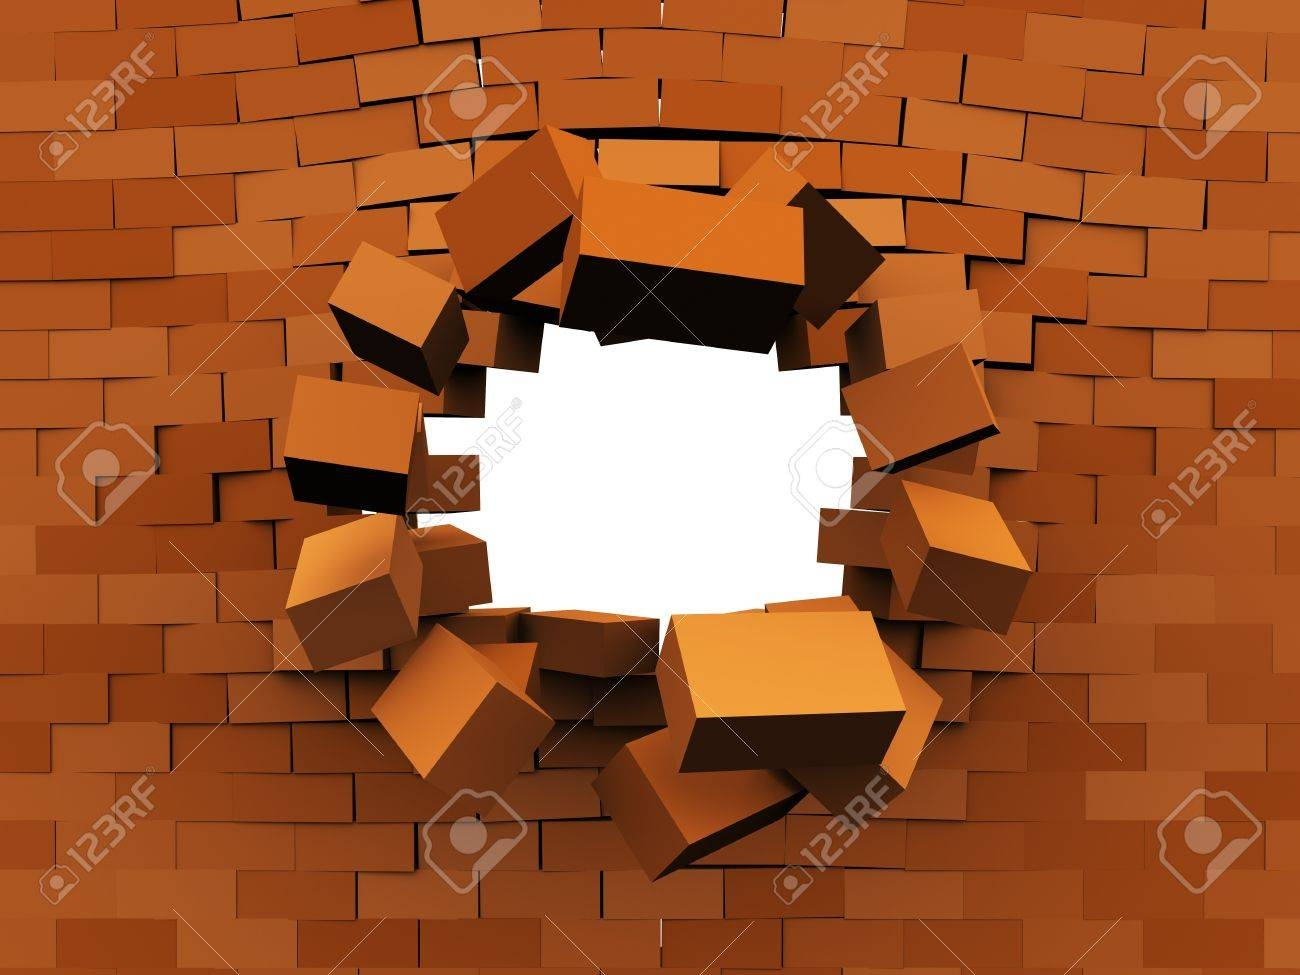 3d Illustration Of Brick Wall Demolition, Over White Background Regarding Most Current 3d Brick Wall Art (View 12 of 20)